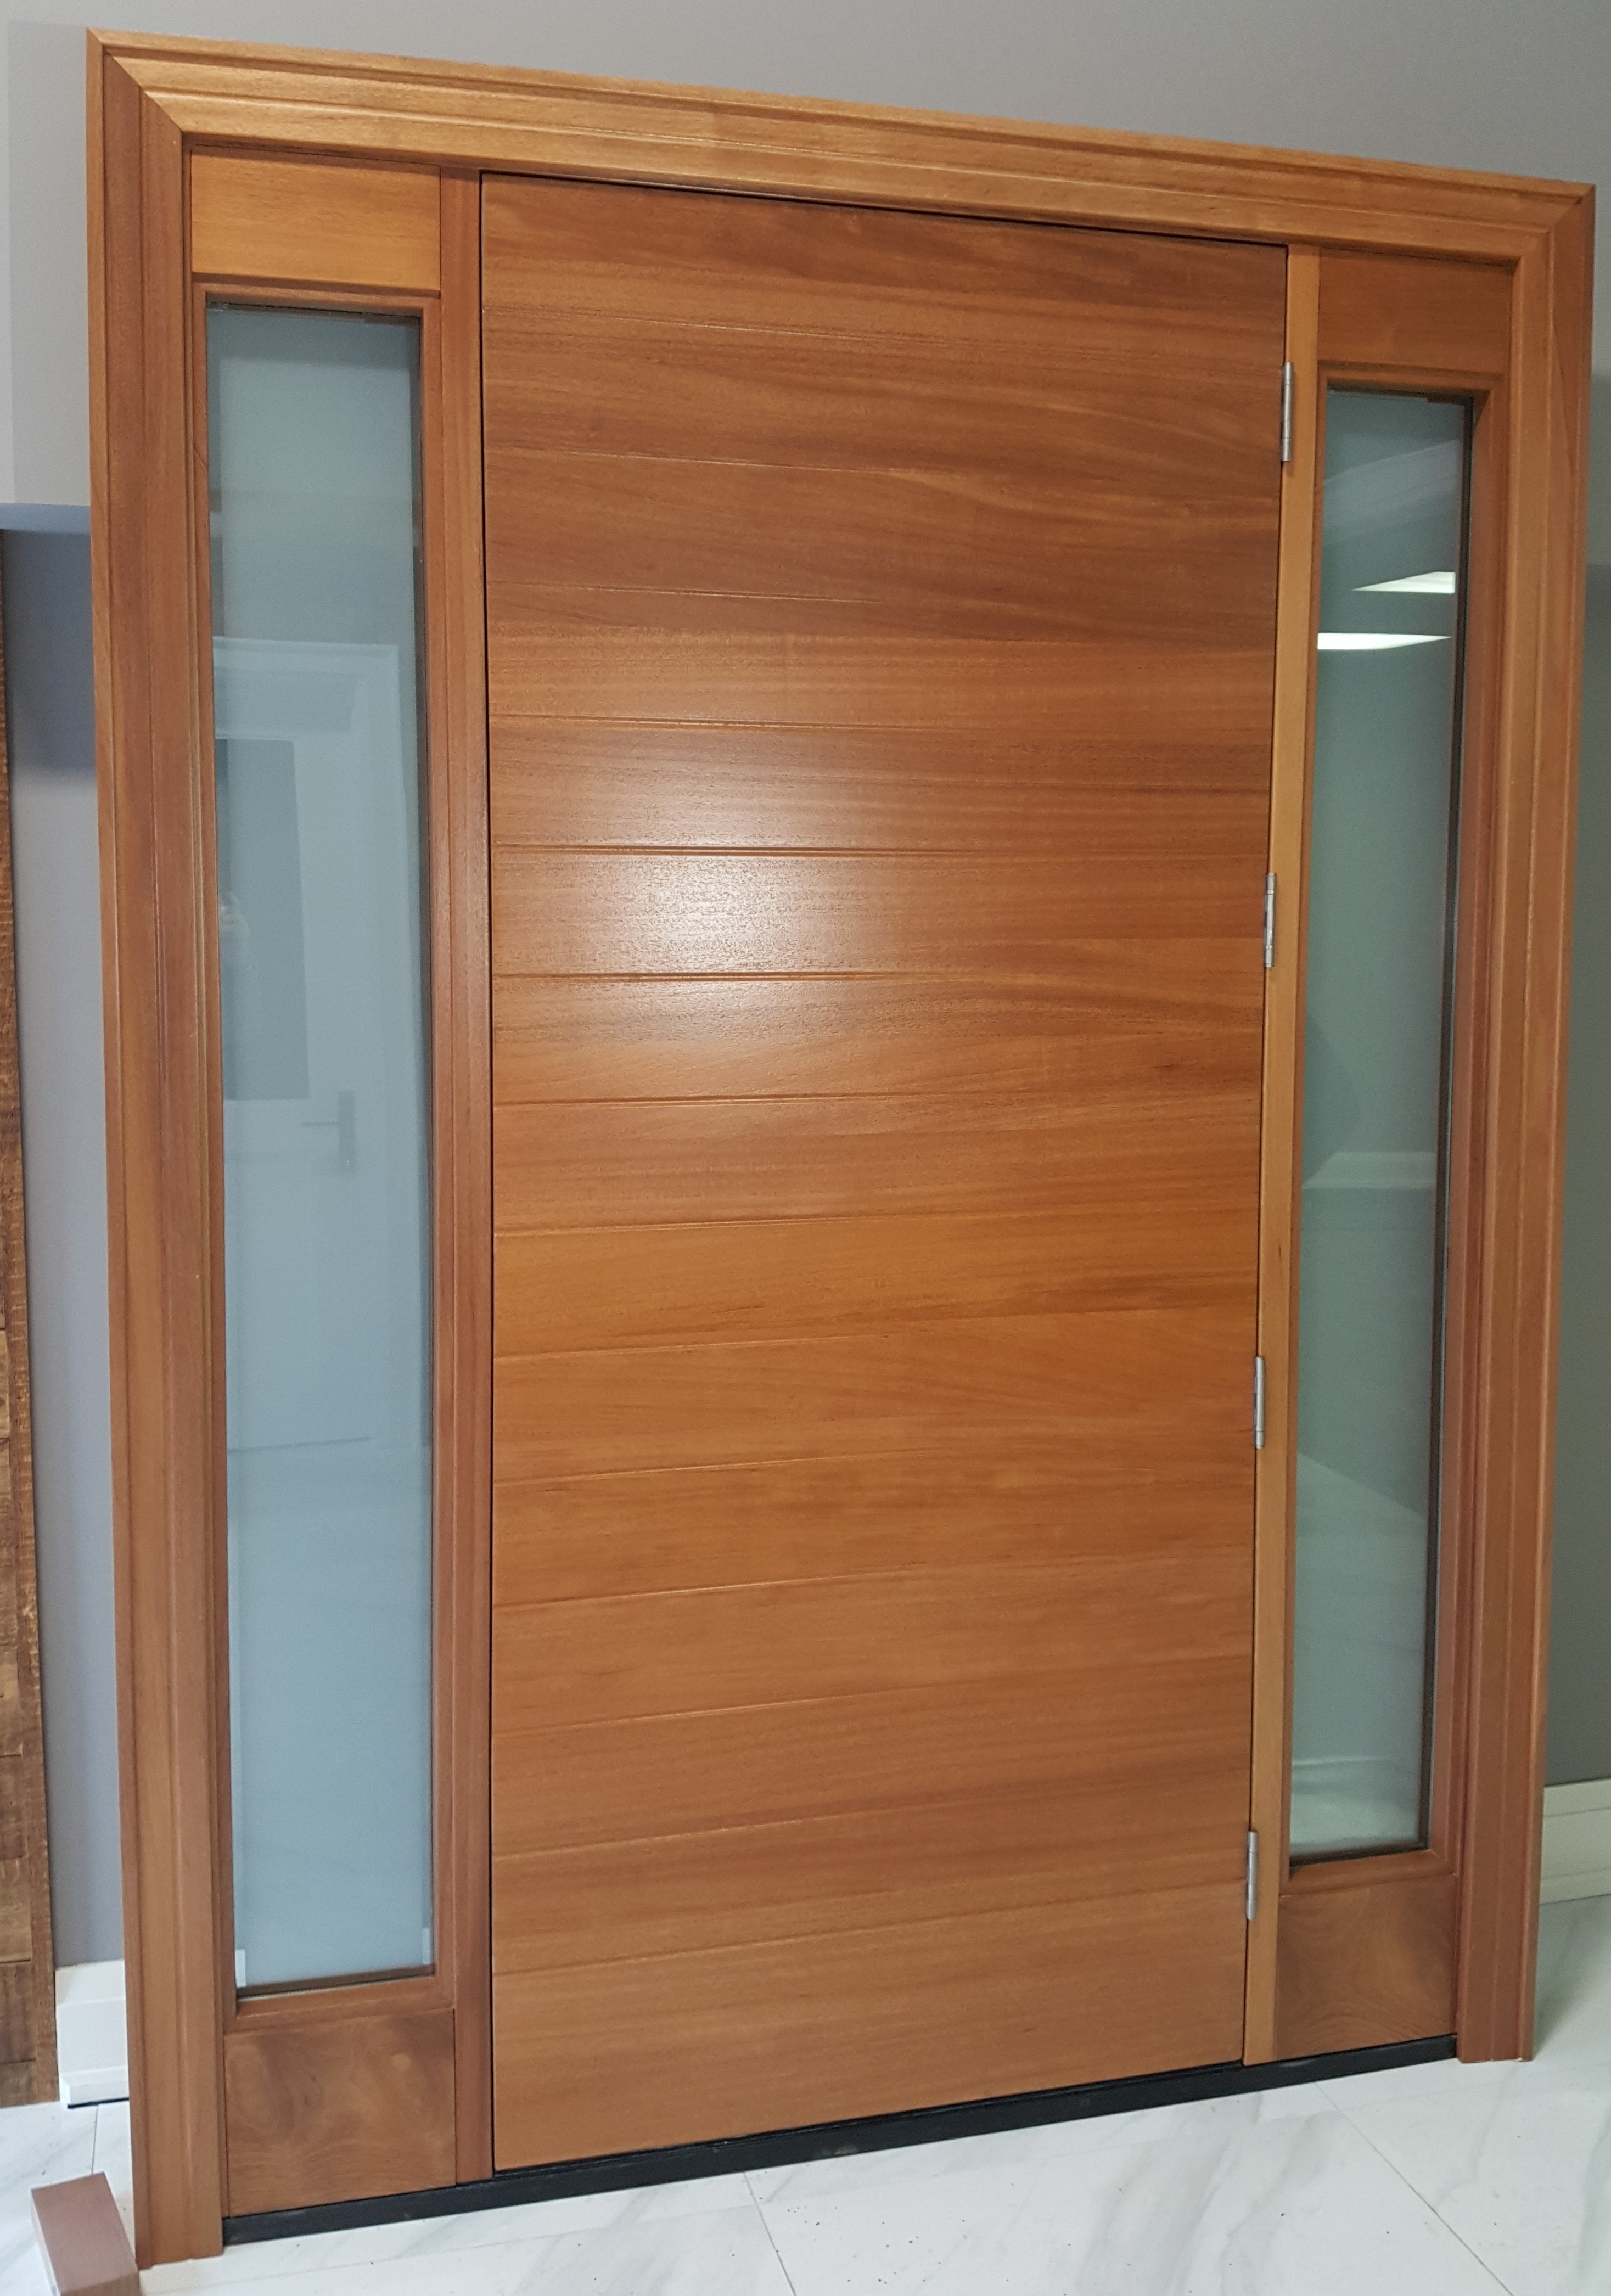 Modern Beauty  #SolidWood, #Mahogany, #CustomMade, #DistinctiveLook, #EntryDoor, #FityourHome for #WelcomeHome